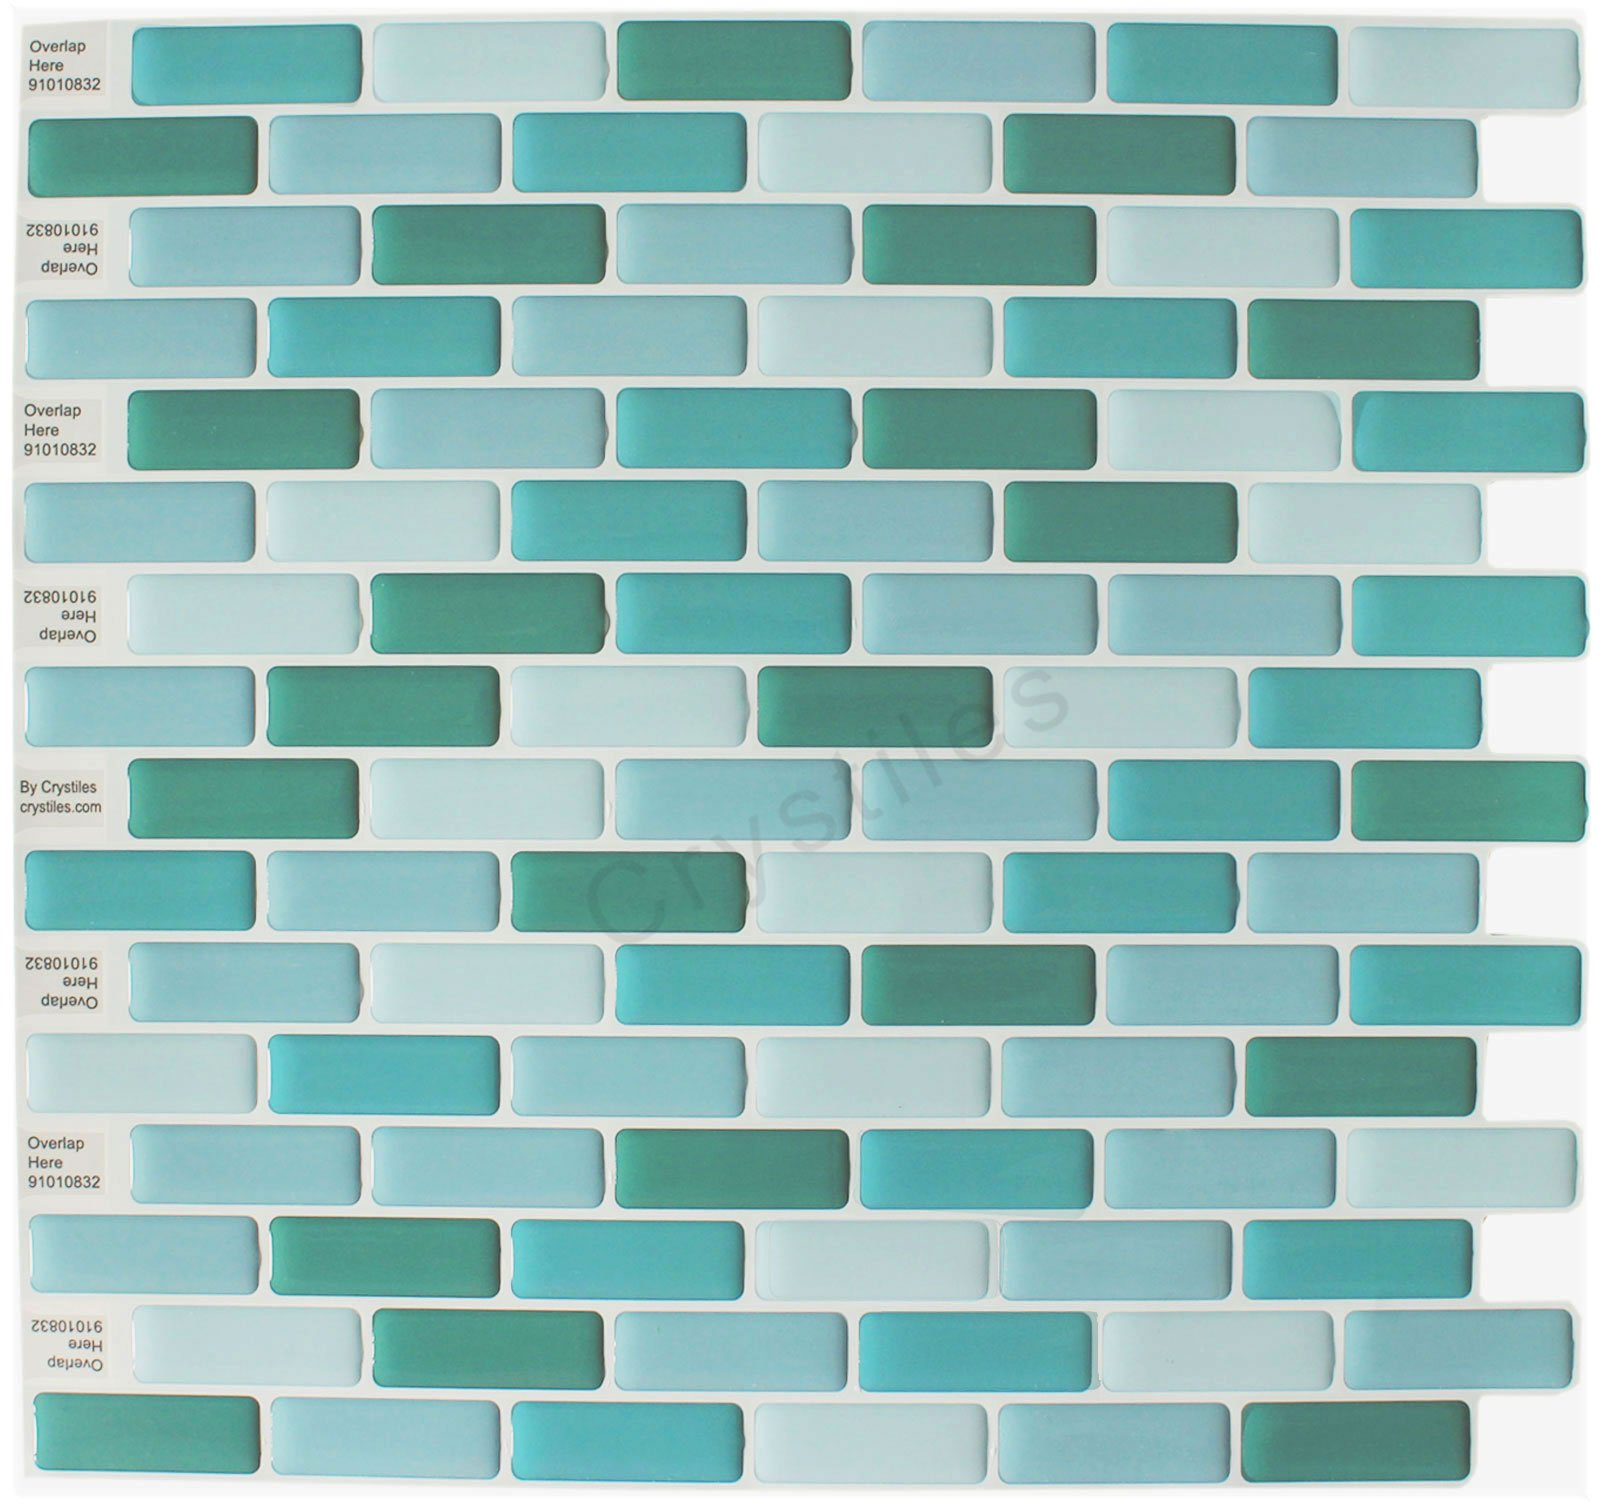 Crystiles Peel and Stick Self-Adhesive DIY Backsplash Stick-on Vinyl Wall Tiles for Kitchen and Bathroom Décor Projects, Item# 91010832, 10'' X 10'' Each, 6 Sheets Pack